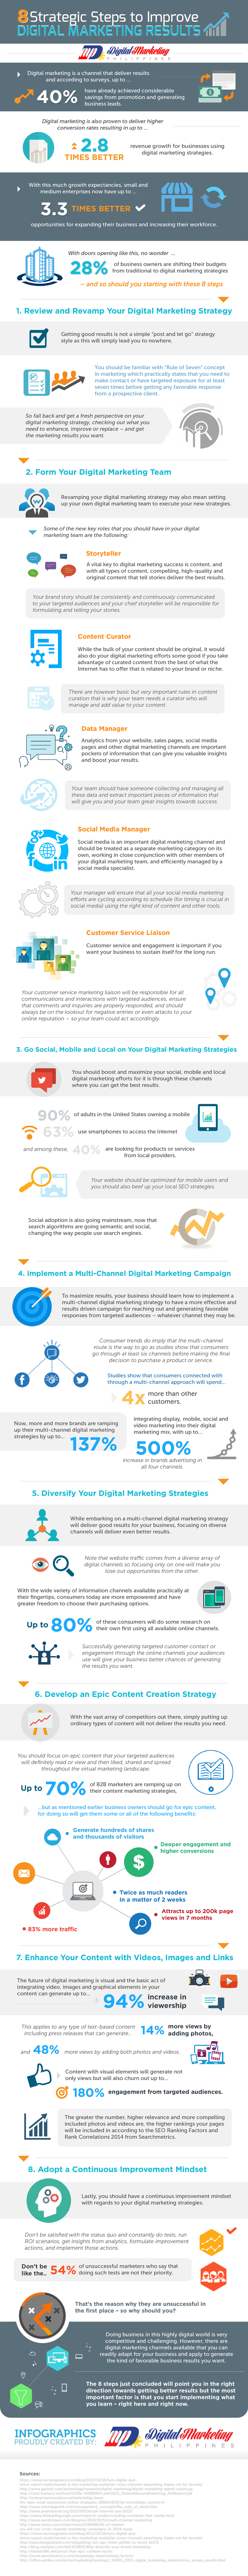 8-Strategic-Steps-to-Improve-Digital-Marketing-Results